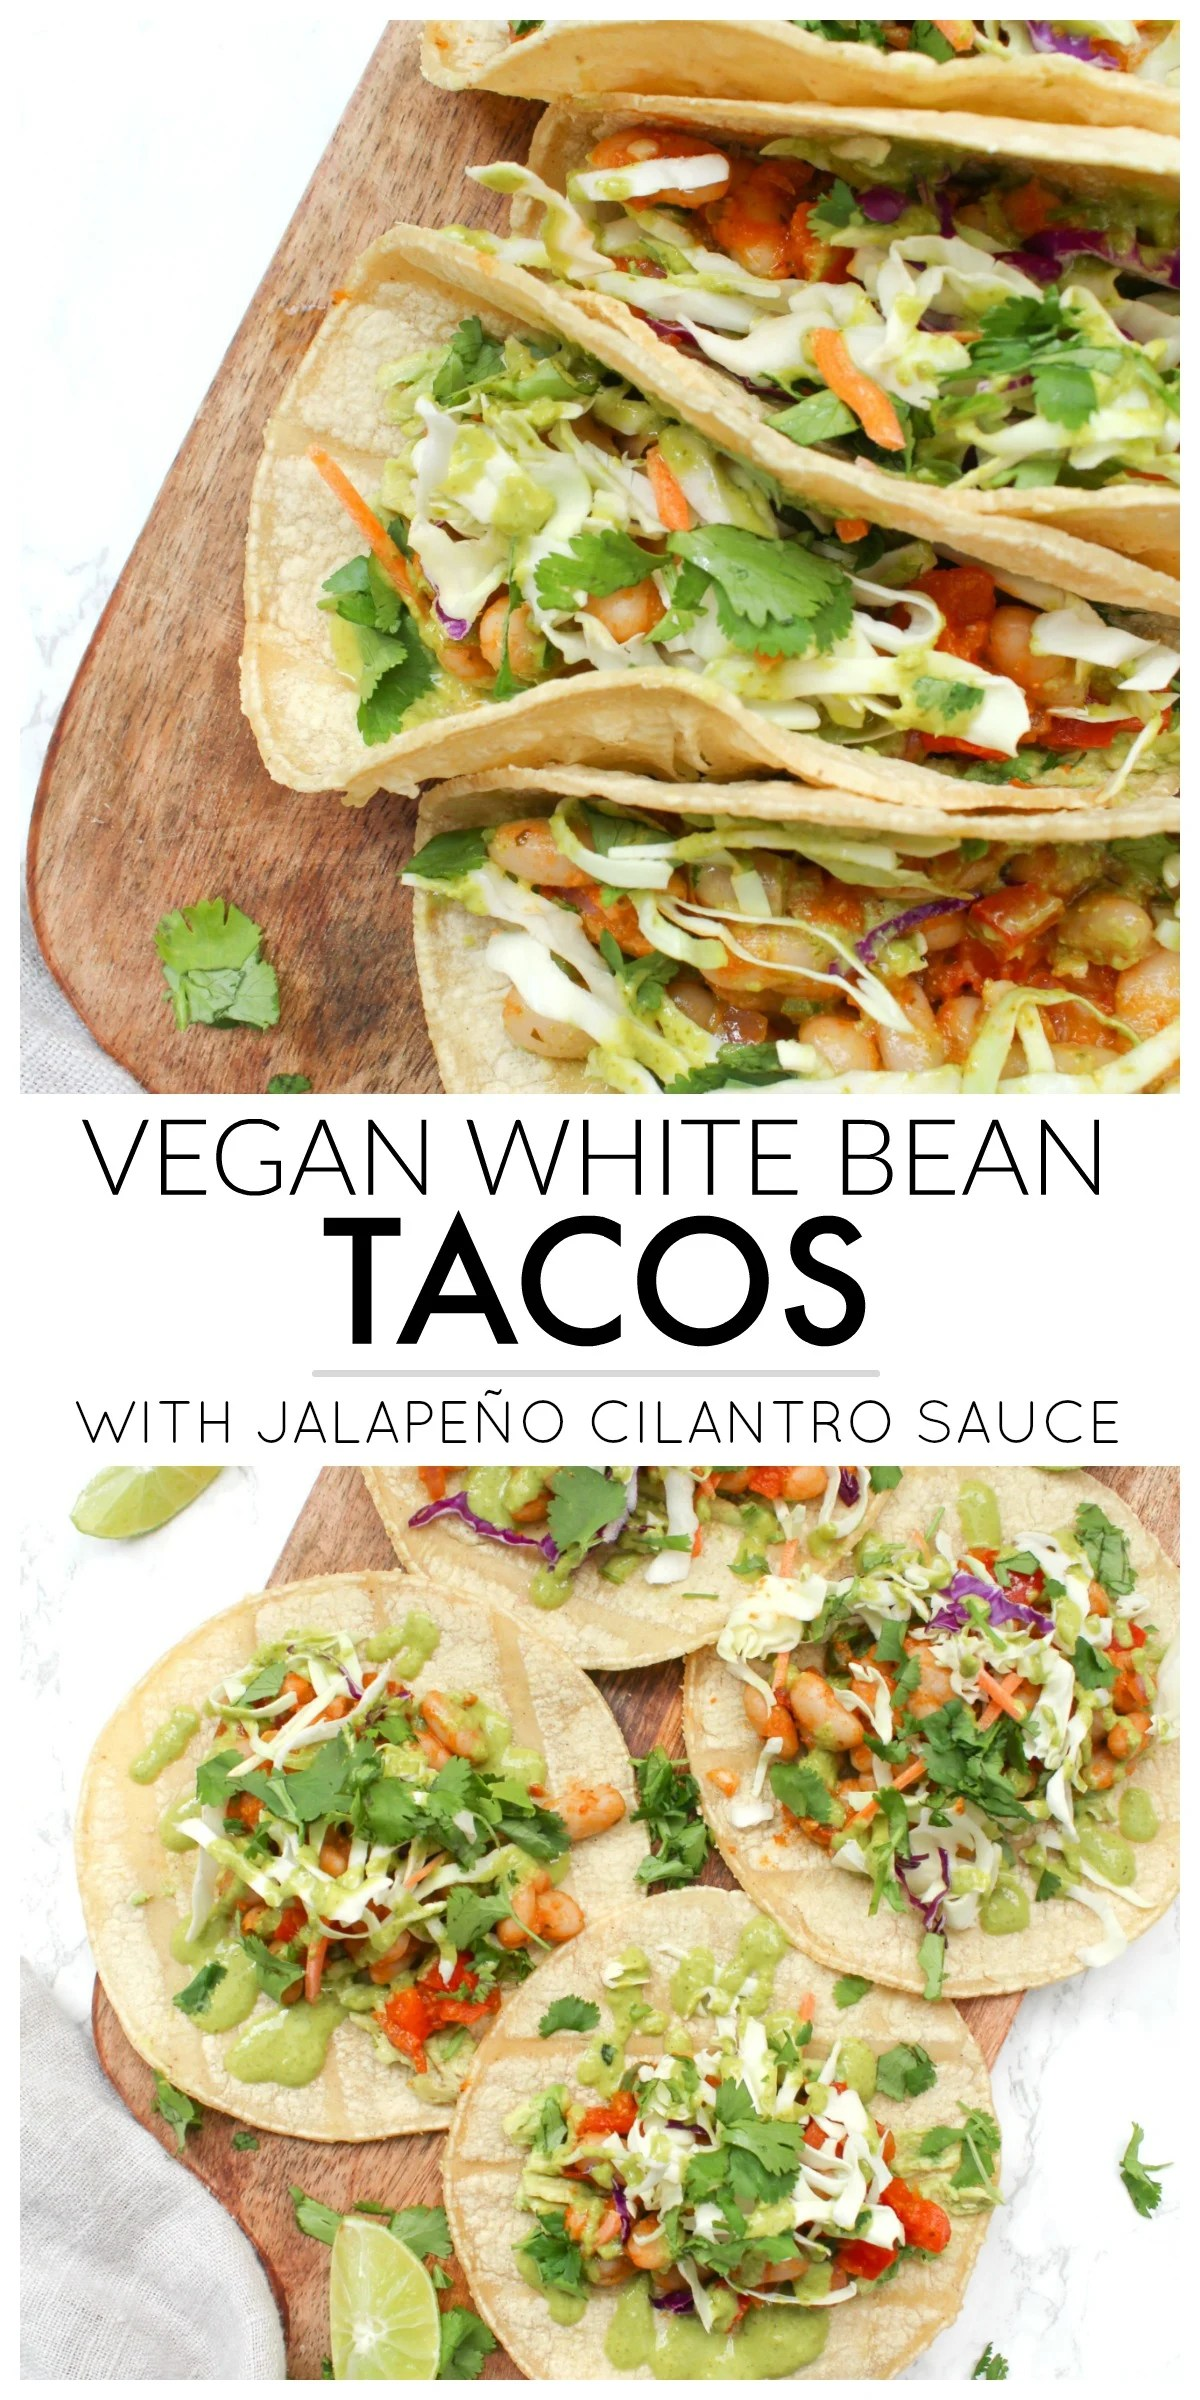 These Vegan White Bean Tacos with Jalapeño Cilantro Sauce are filled with spicy white beans, pre-made slaw and a delicious green sauce | ThisSavoryVegan.com #thissavoryvegan #vegantacos